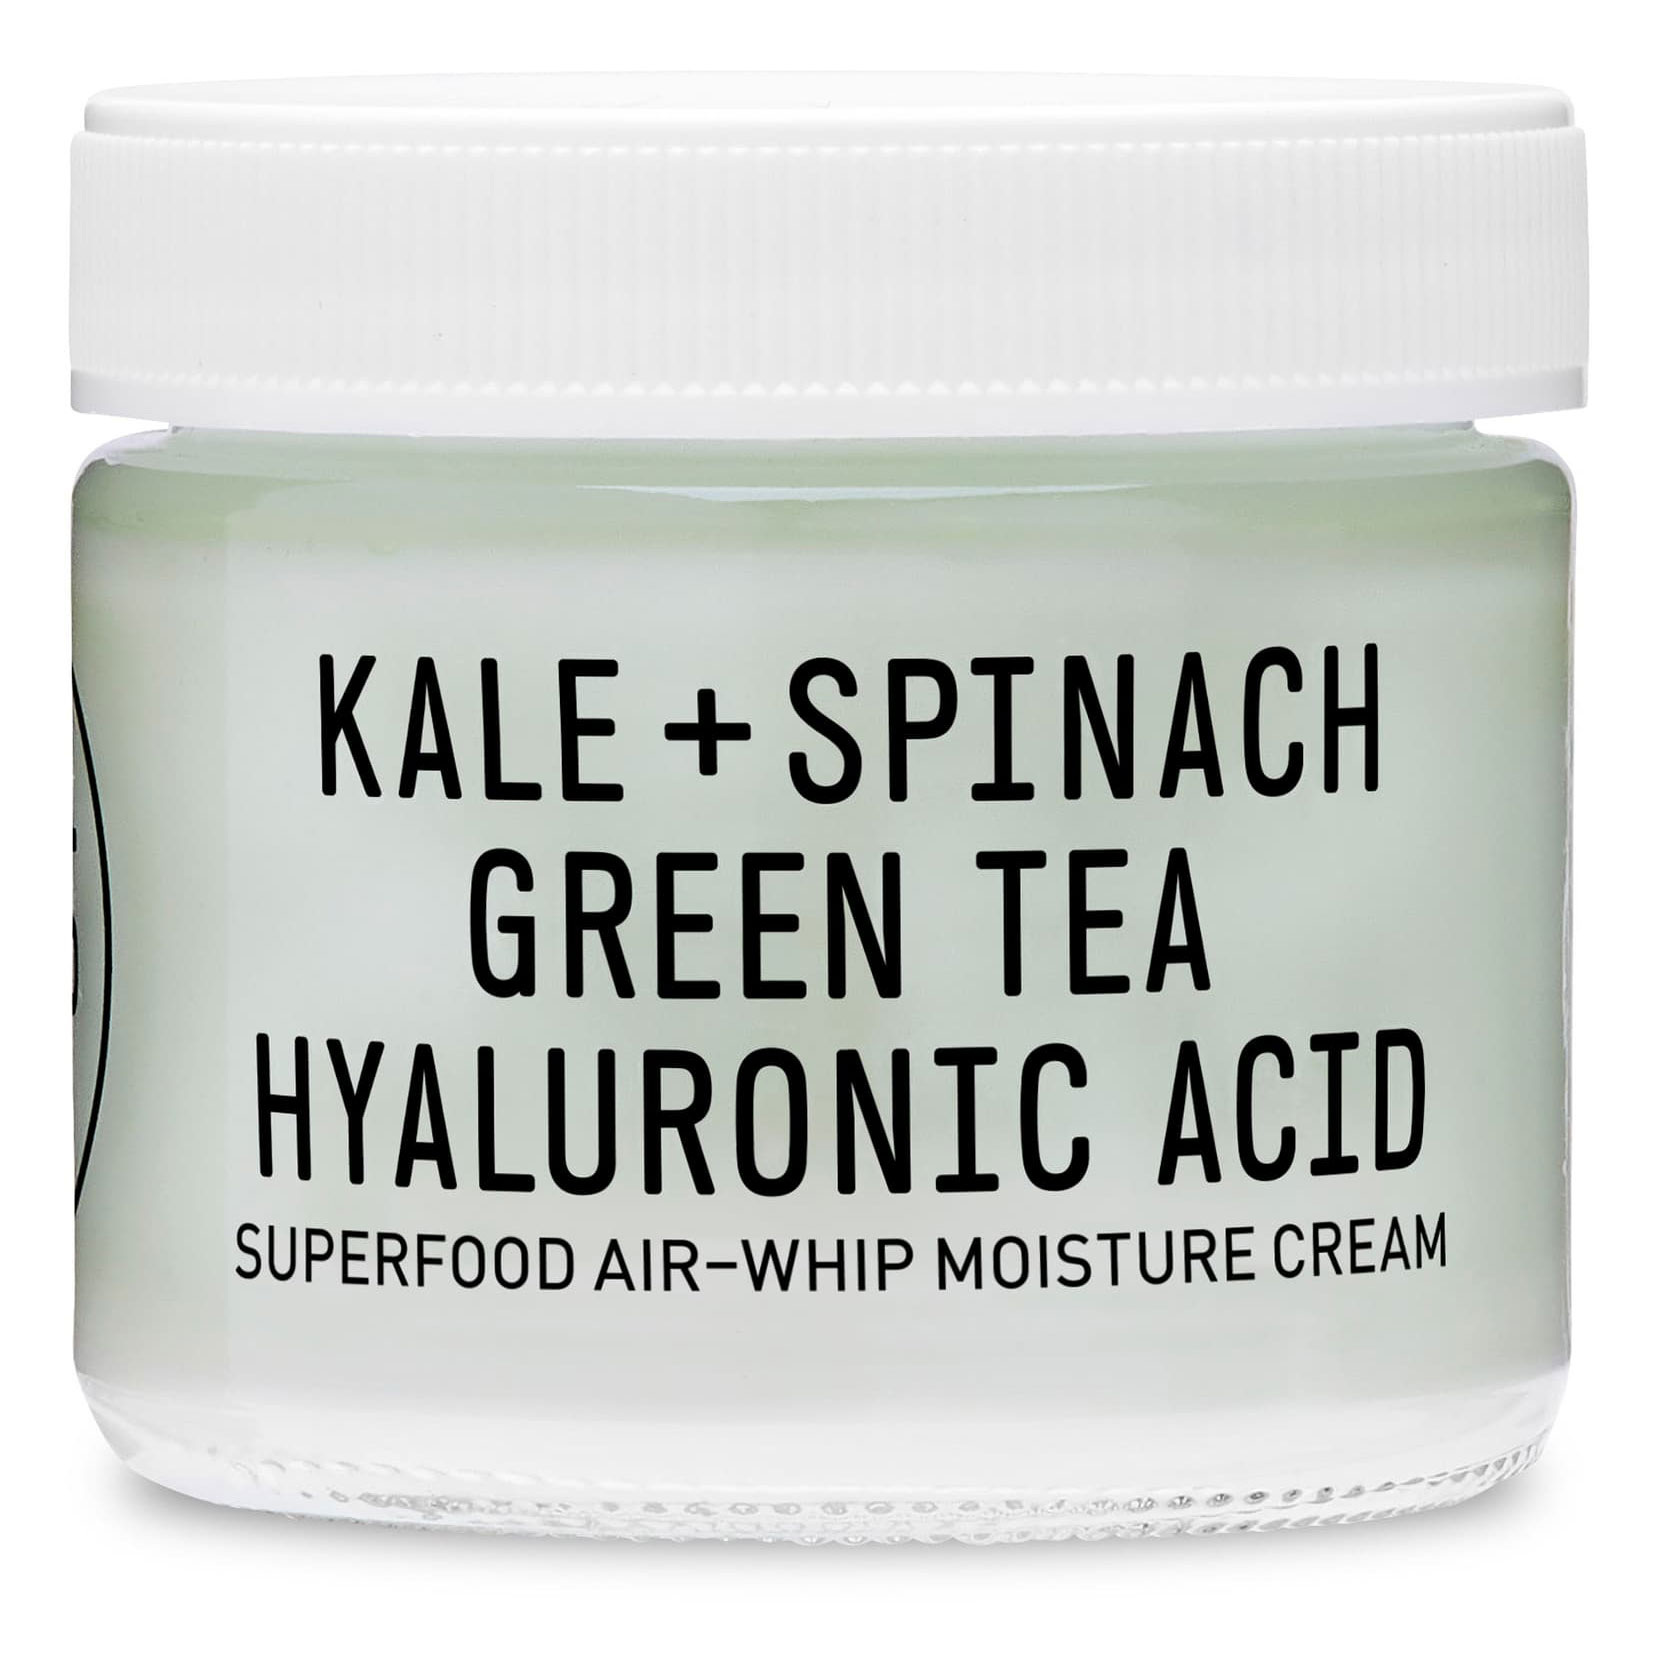 Best Lightweight Face Moisturizer for Summer: Youth to the People Superfood Air-Whip Moisture Cream